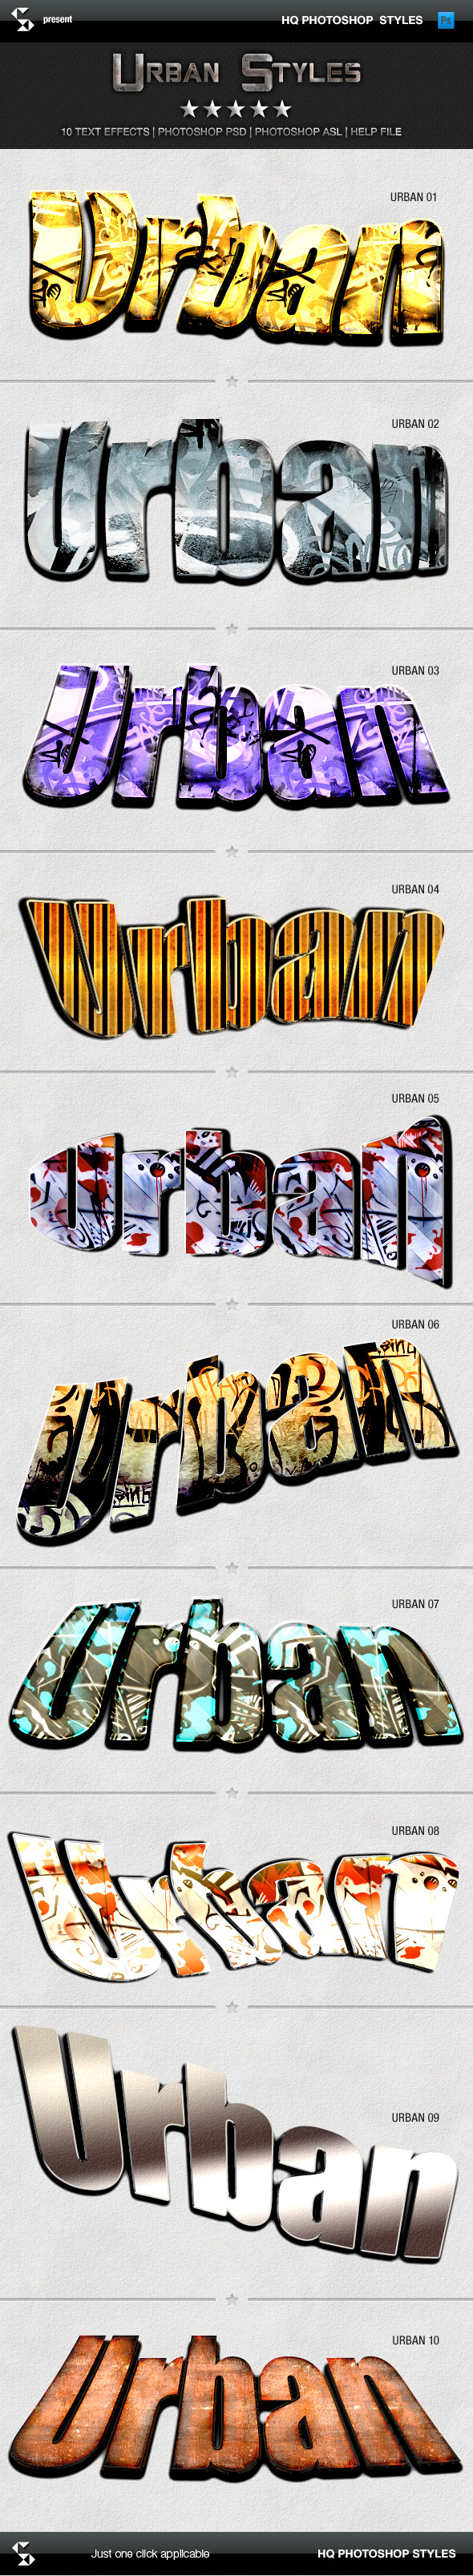 Urban Styles - Street and Graffiti - Text Effects Styles